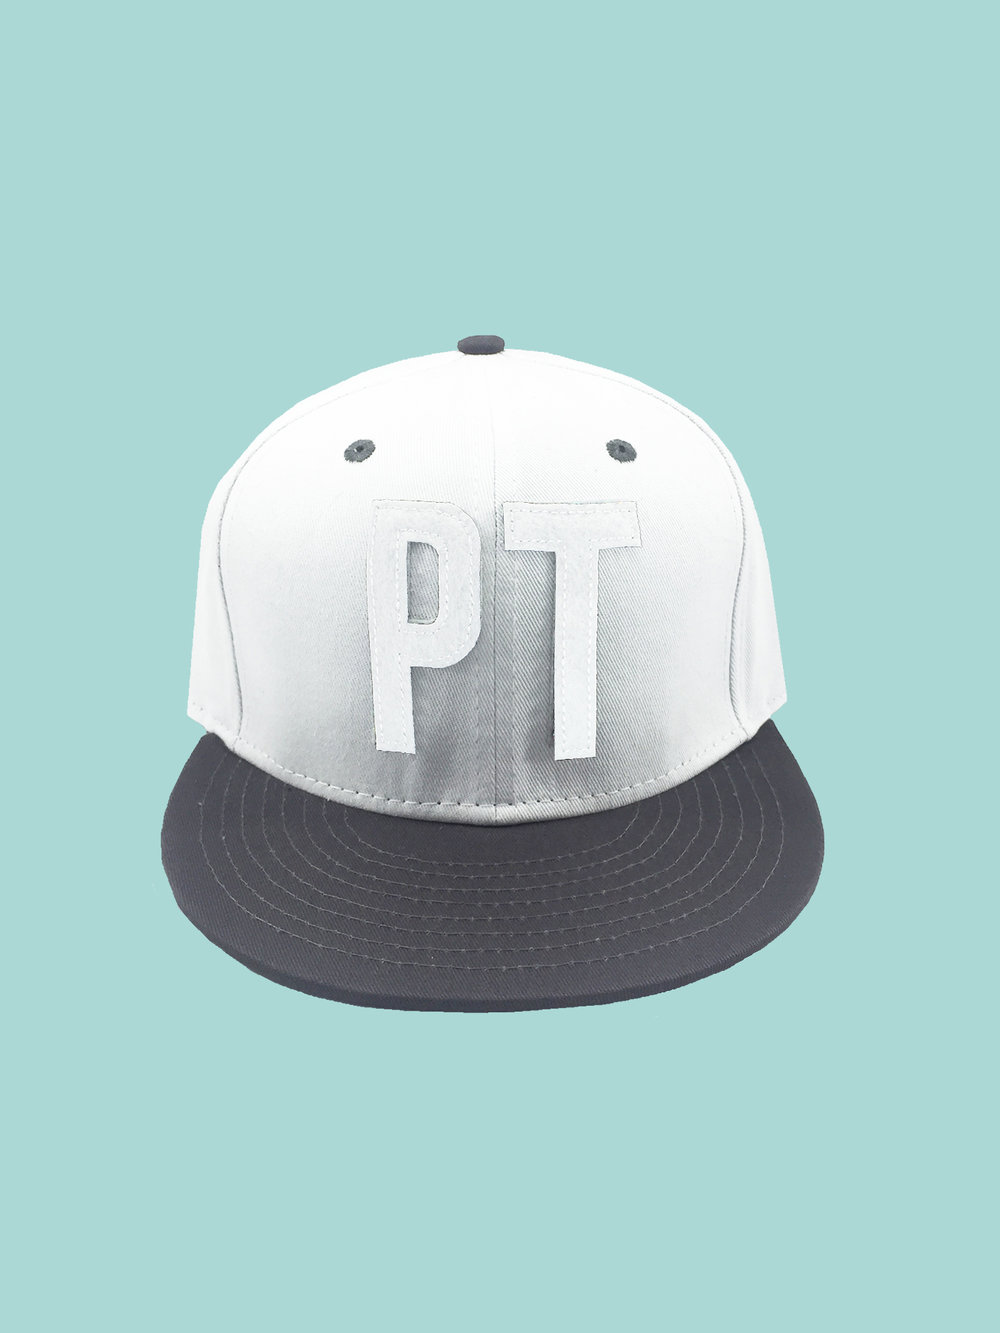 BASEBALL HAT: White Ptown Hat